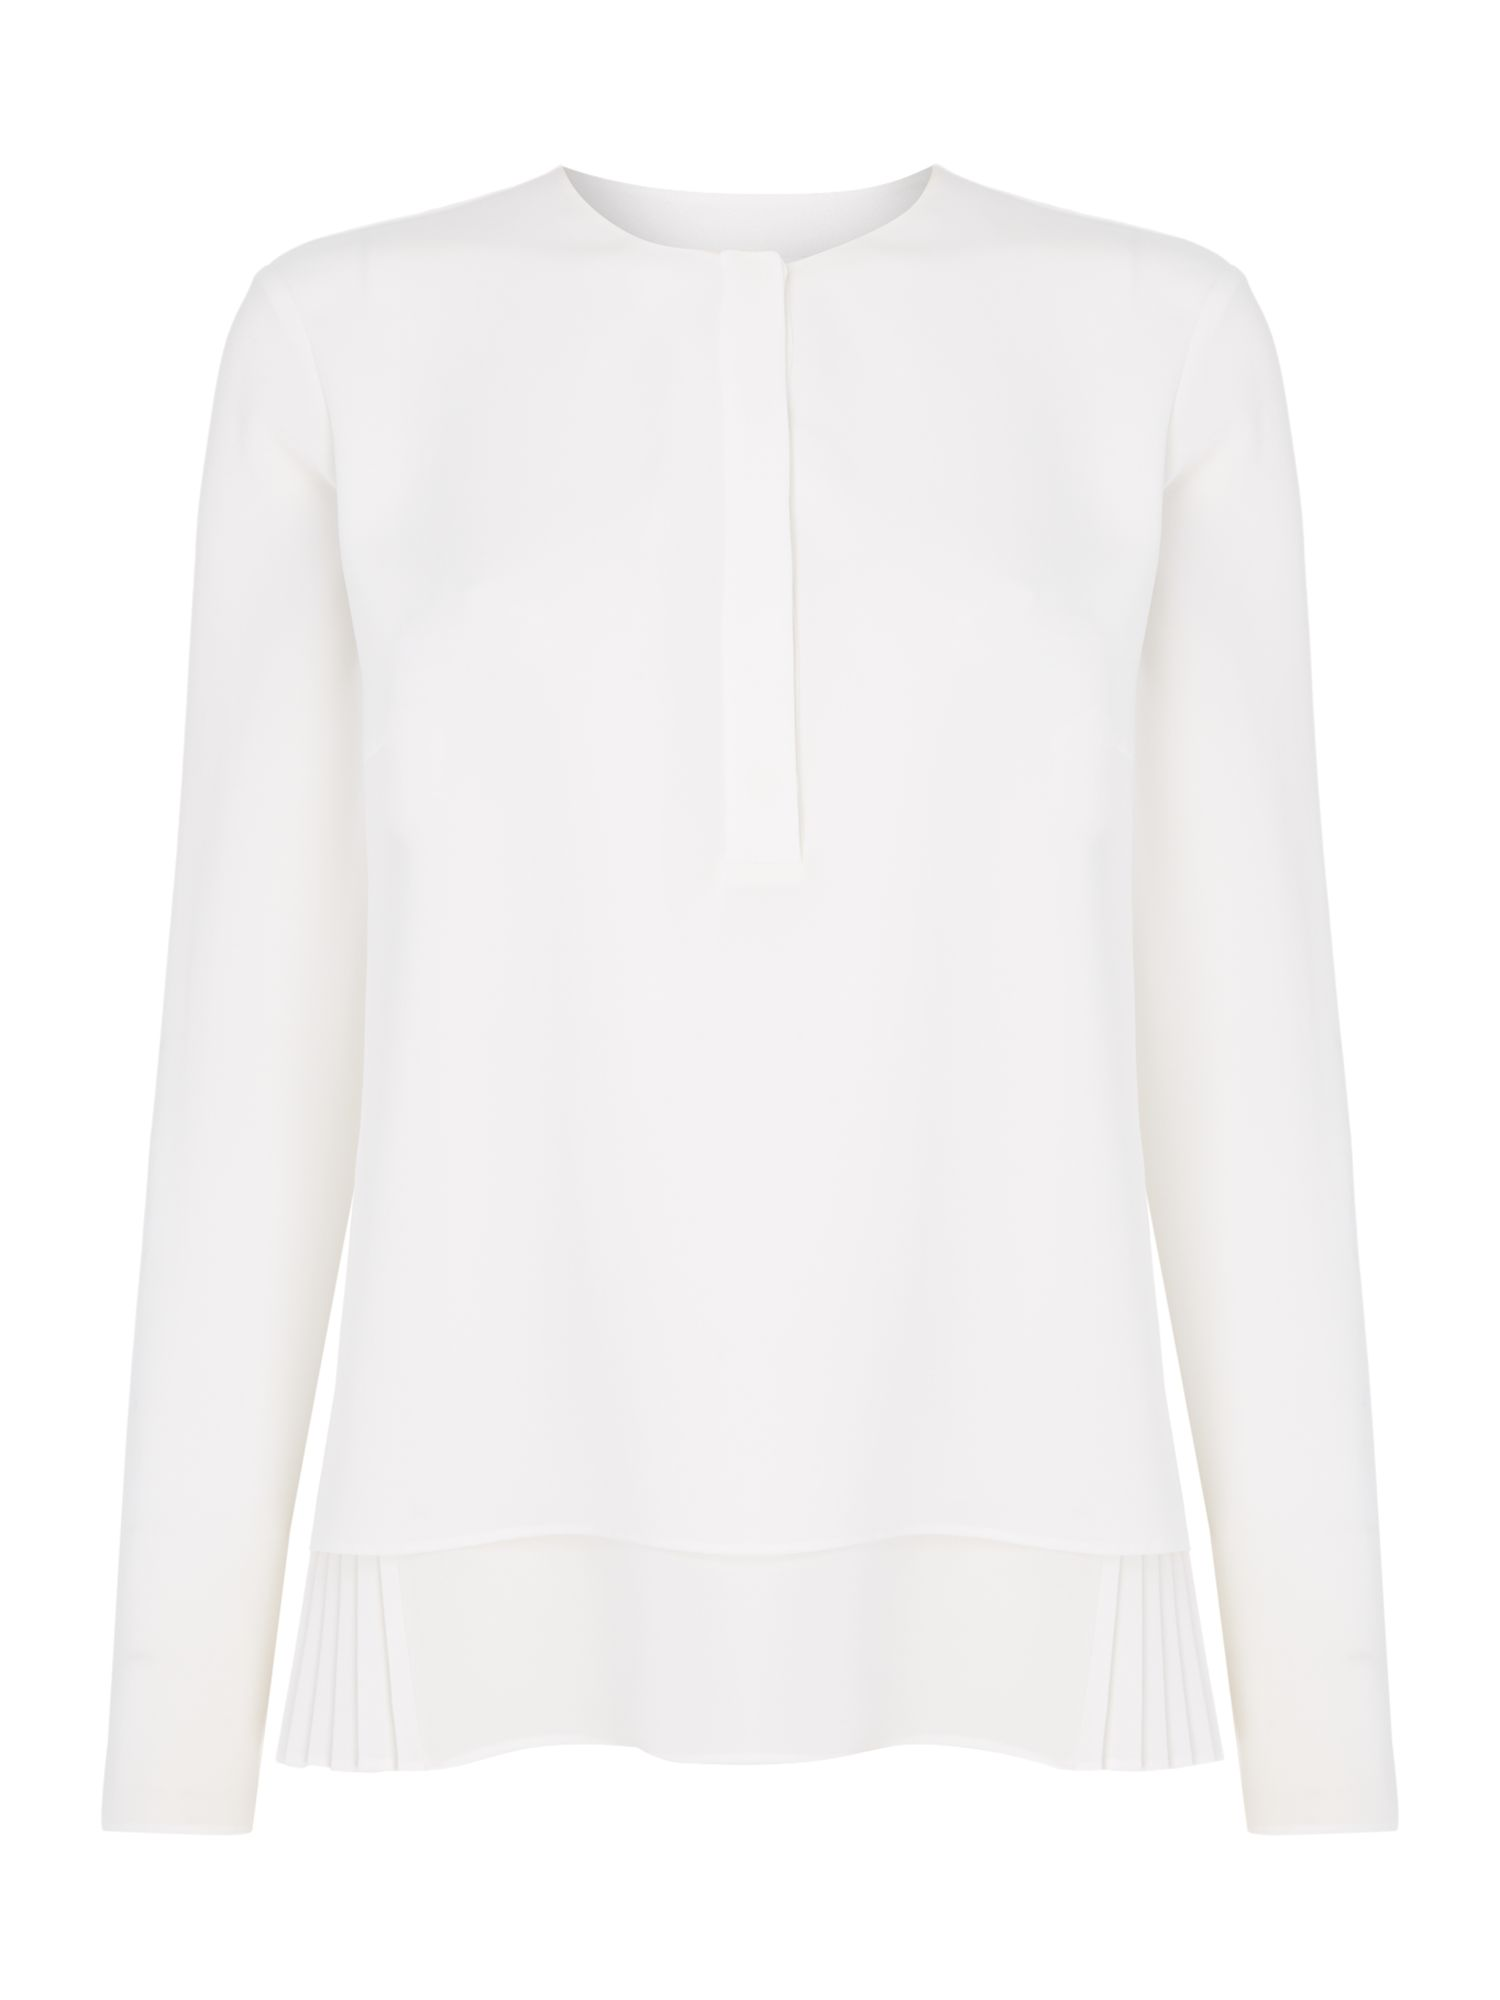 Hugo Boss Bialea pleated blouse, White